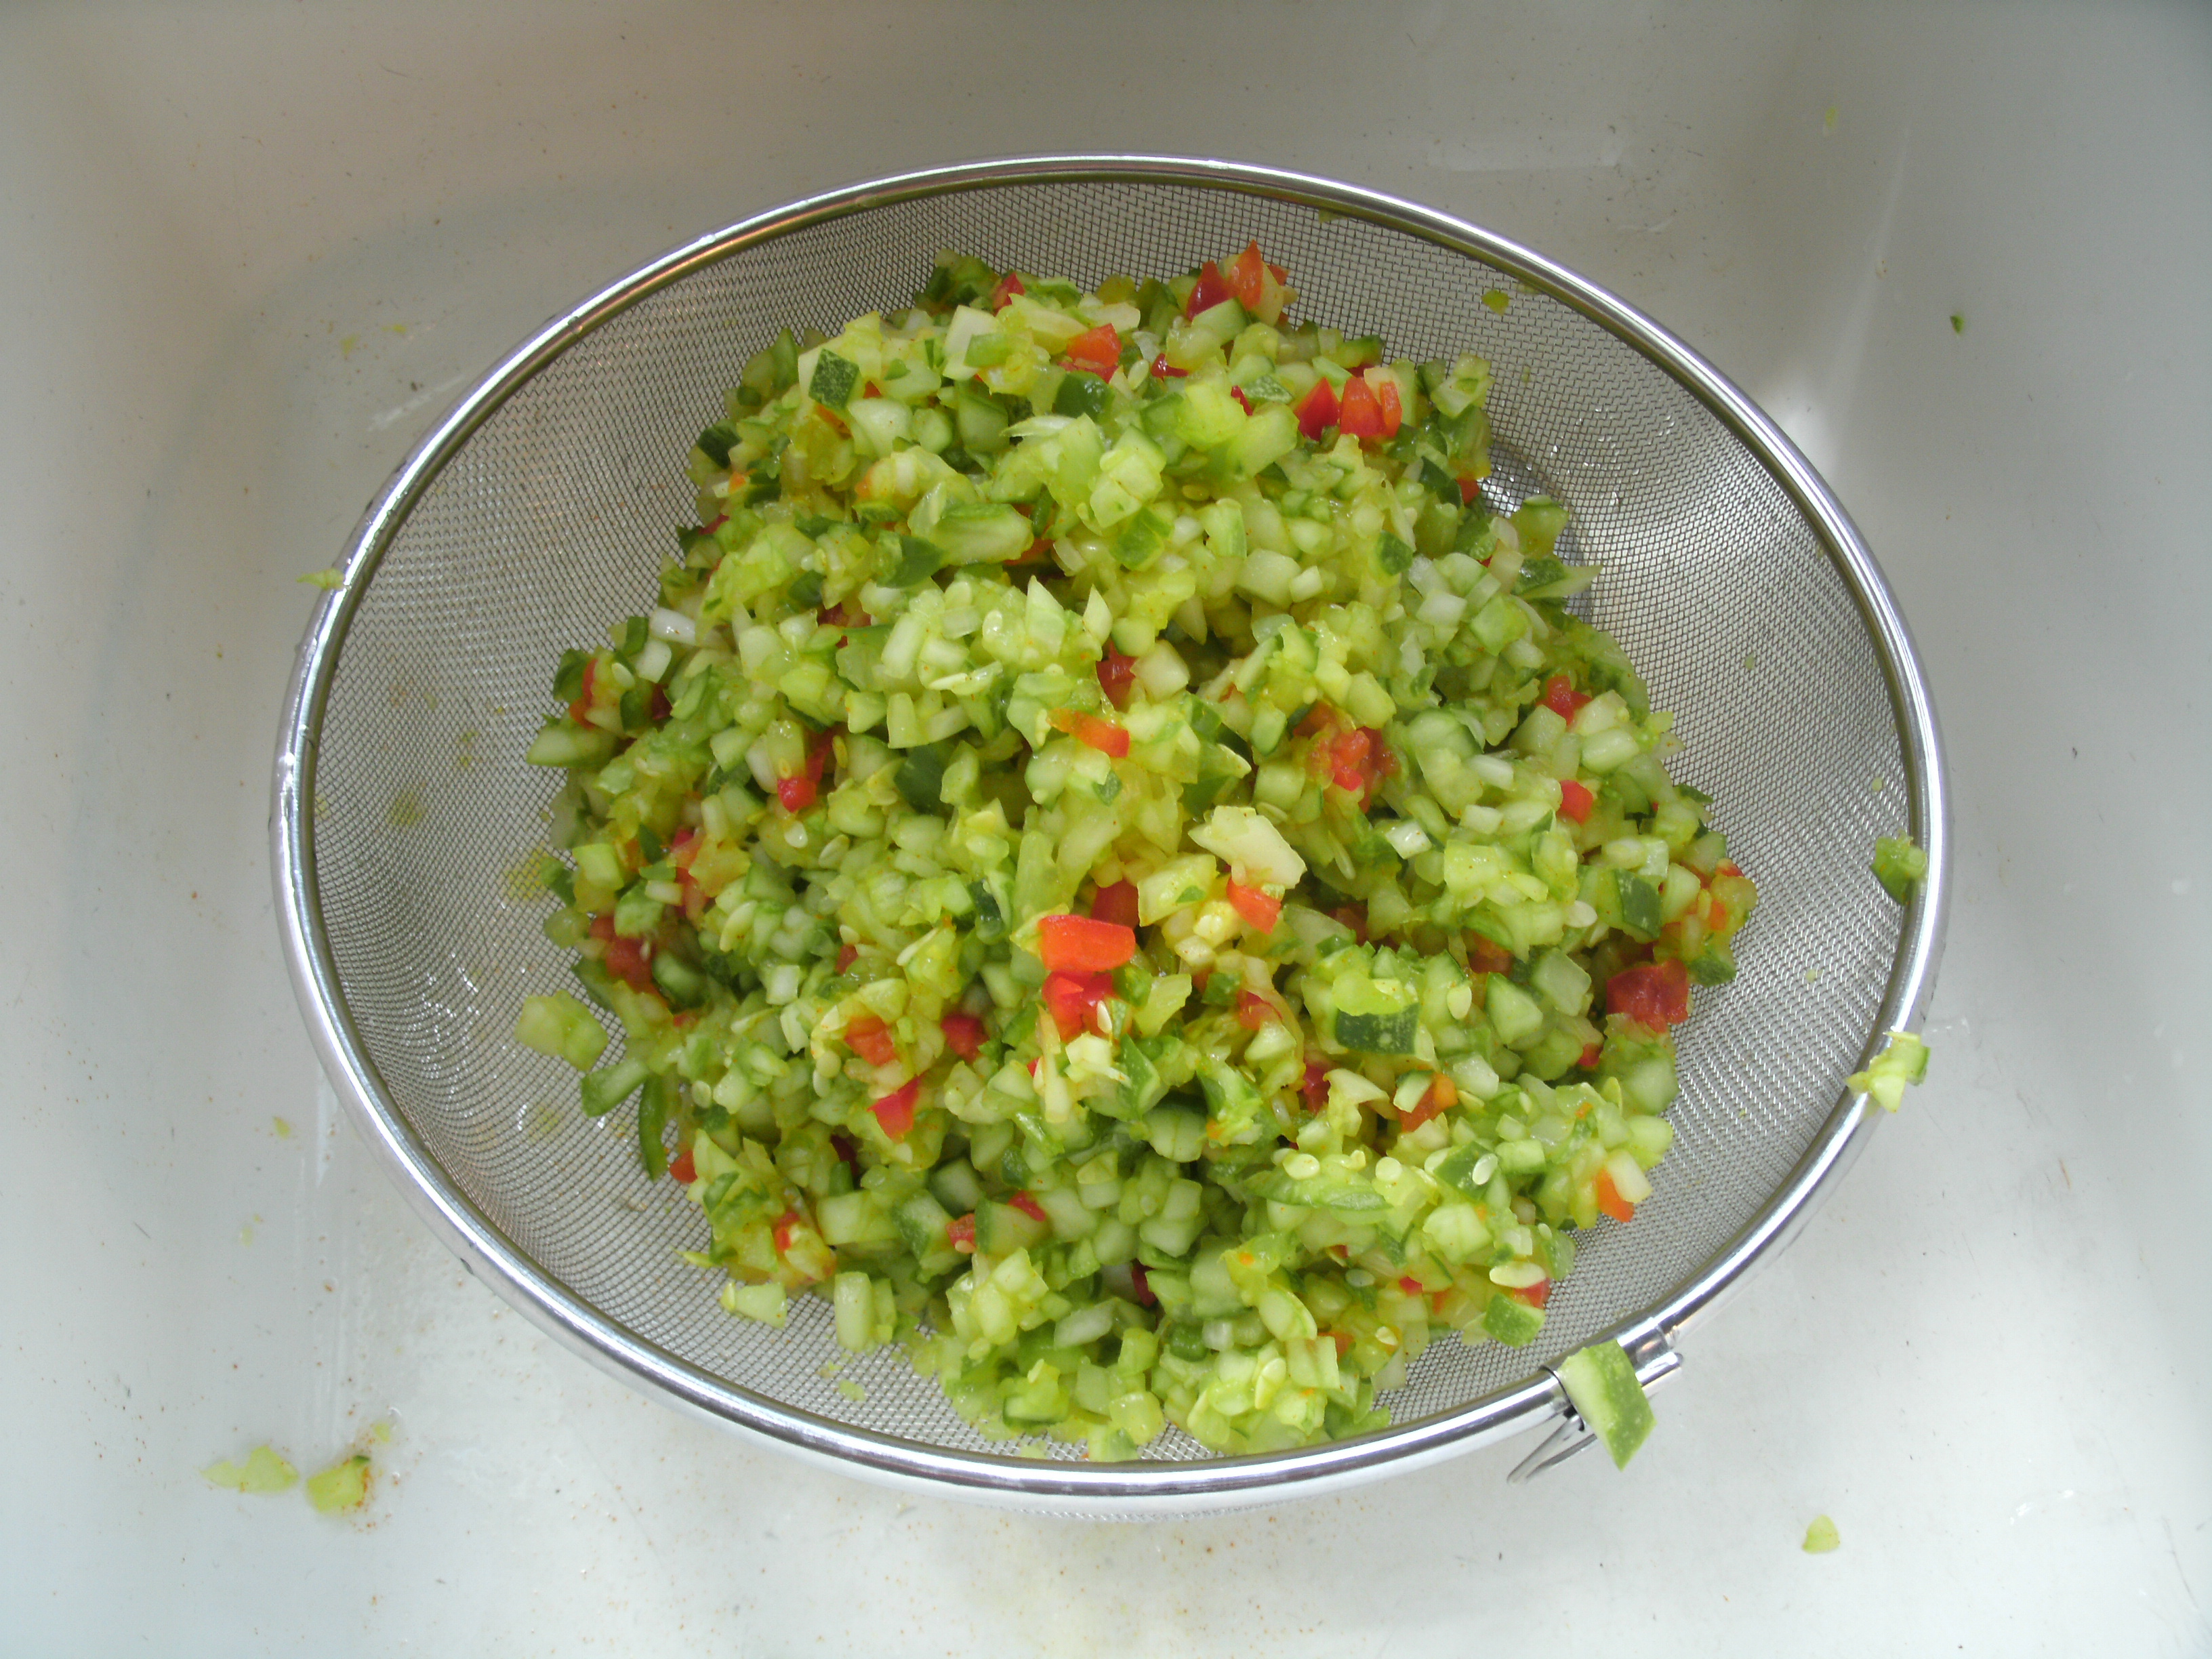 Pickle Relish the way to rid your kitchen of extra cucumbers | West ...